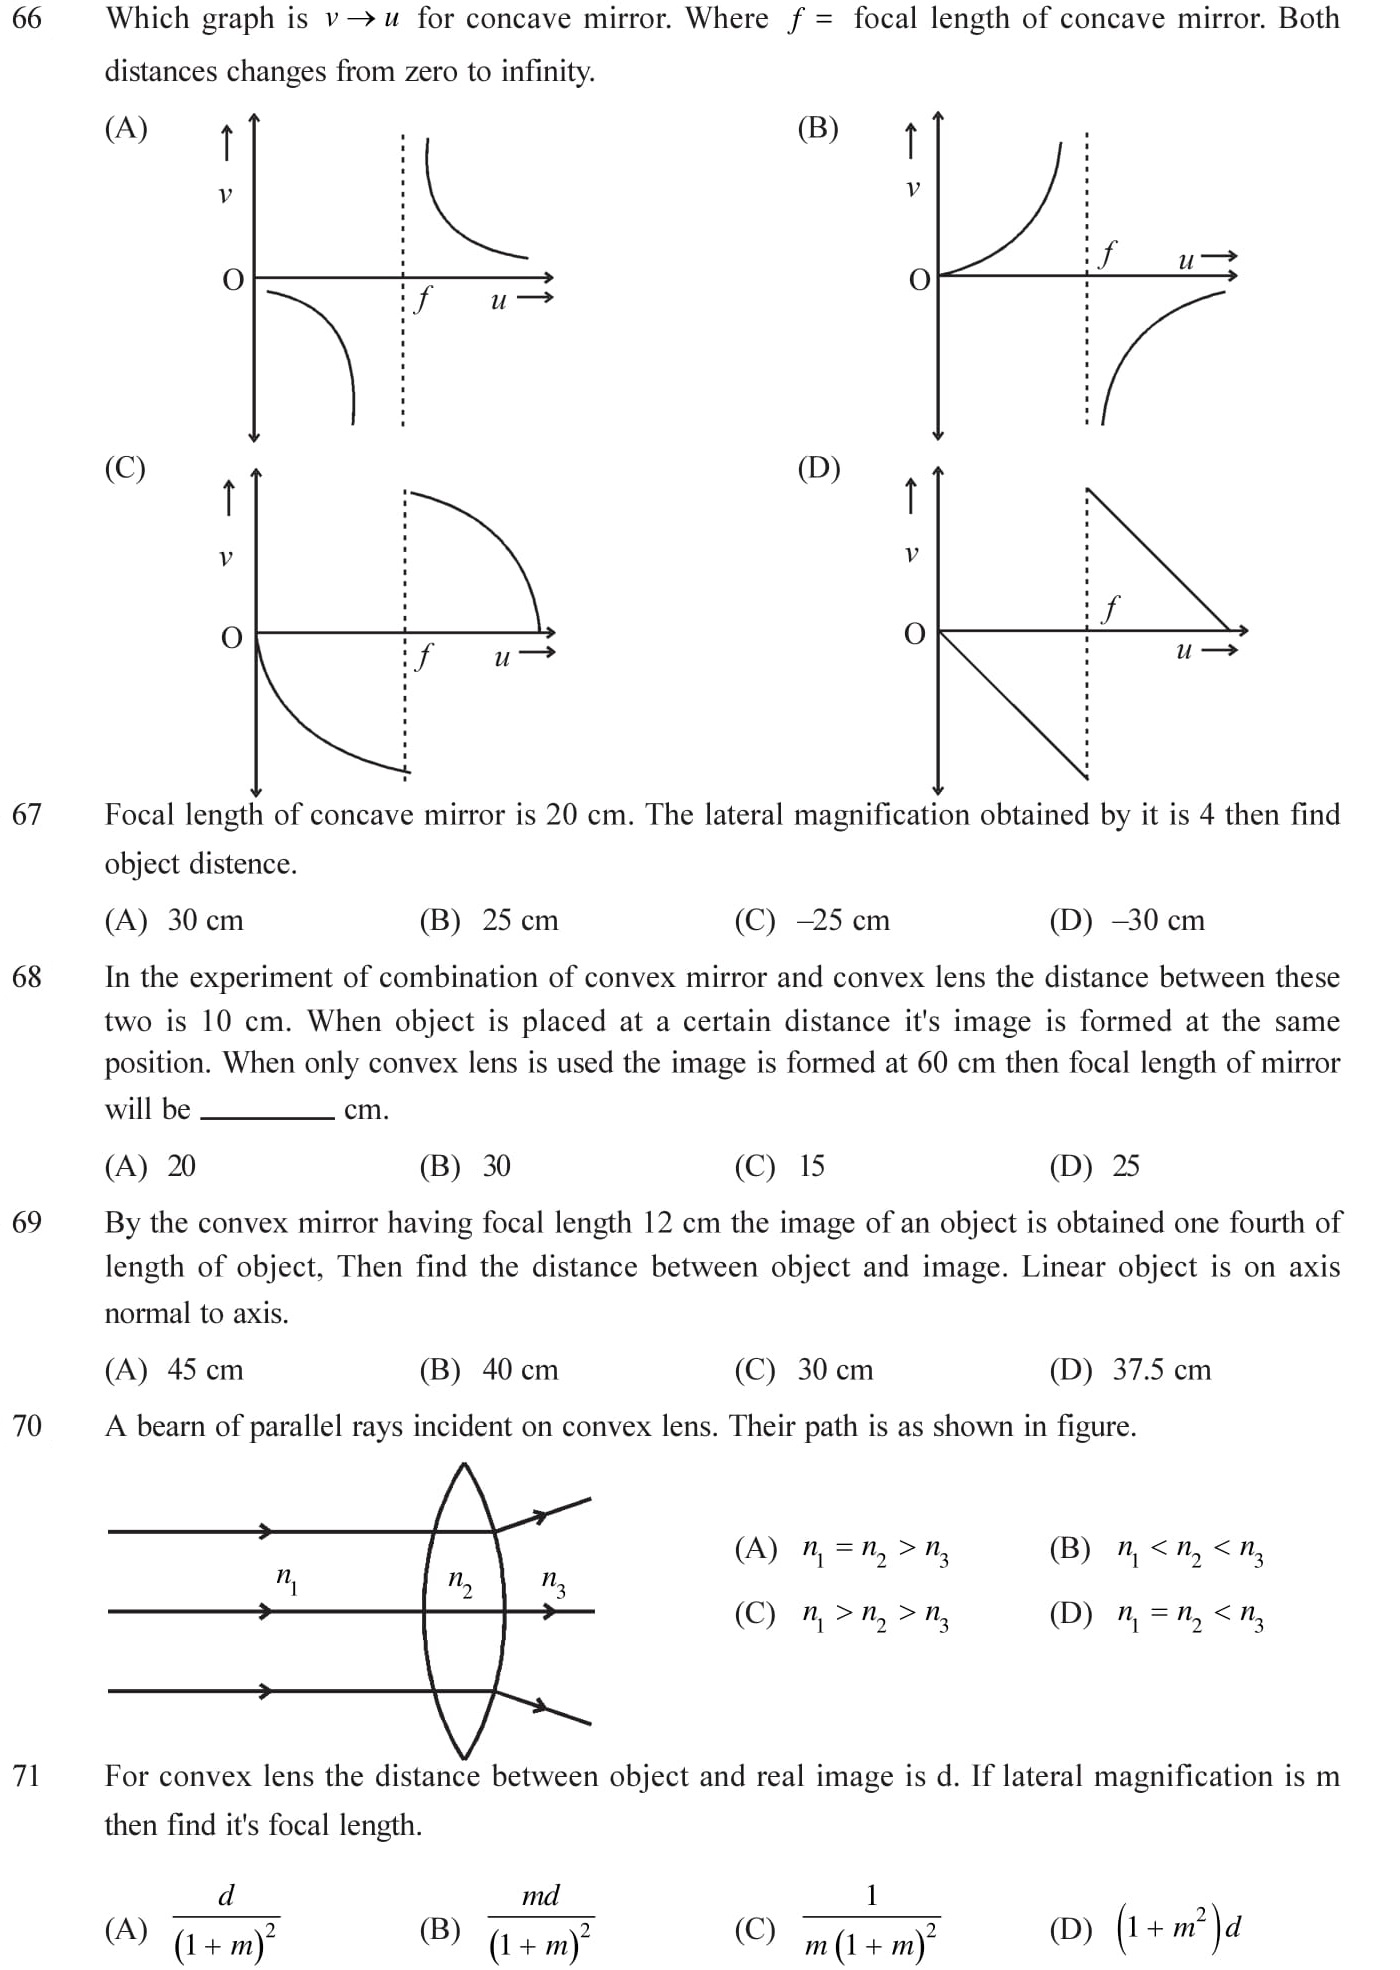 More questions on wave optices with answers